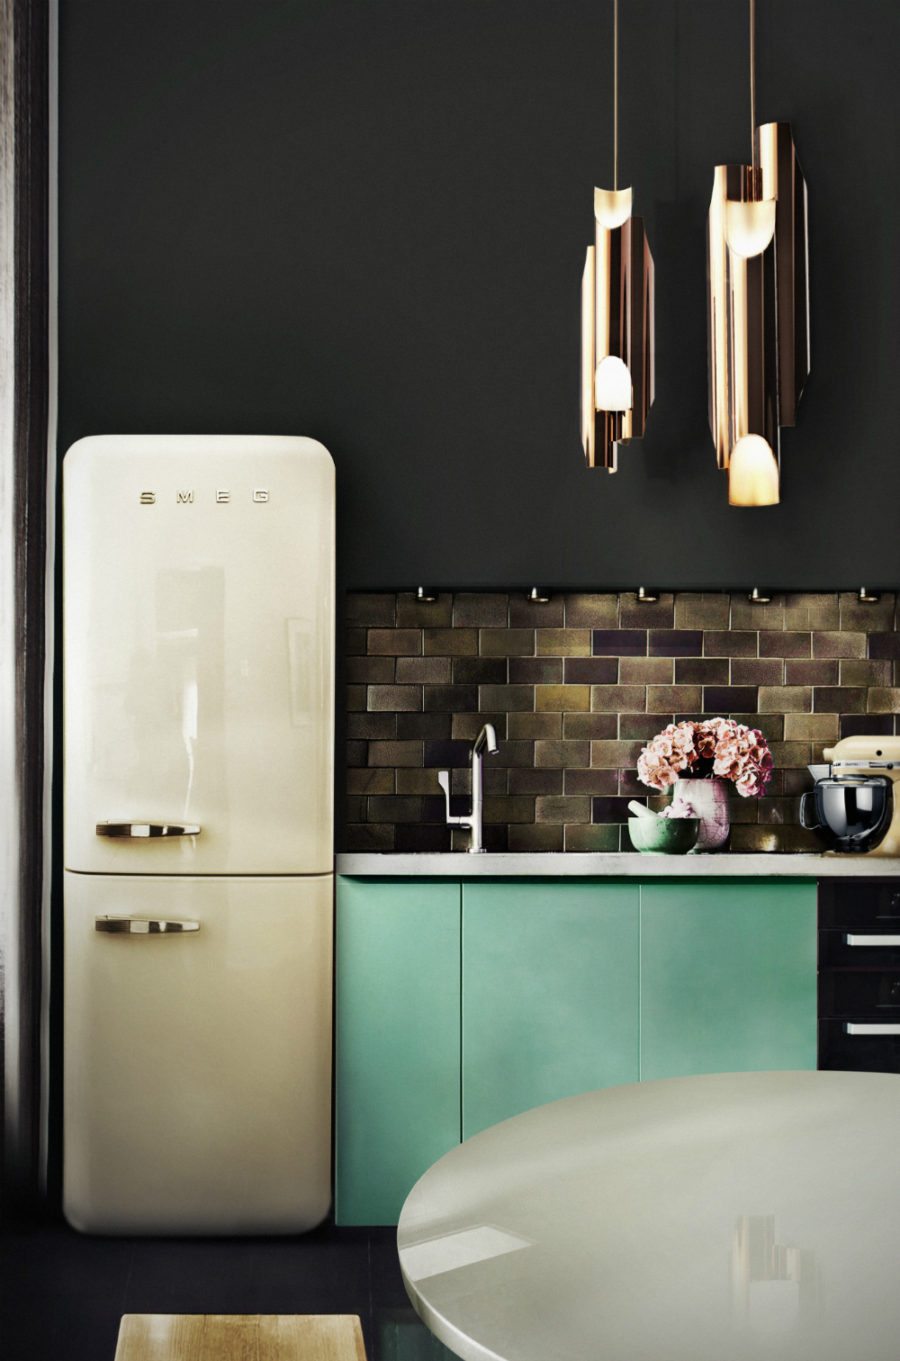 Sophisticated kitchen with a retro touch